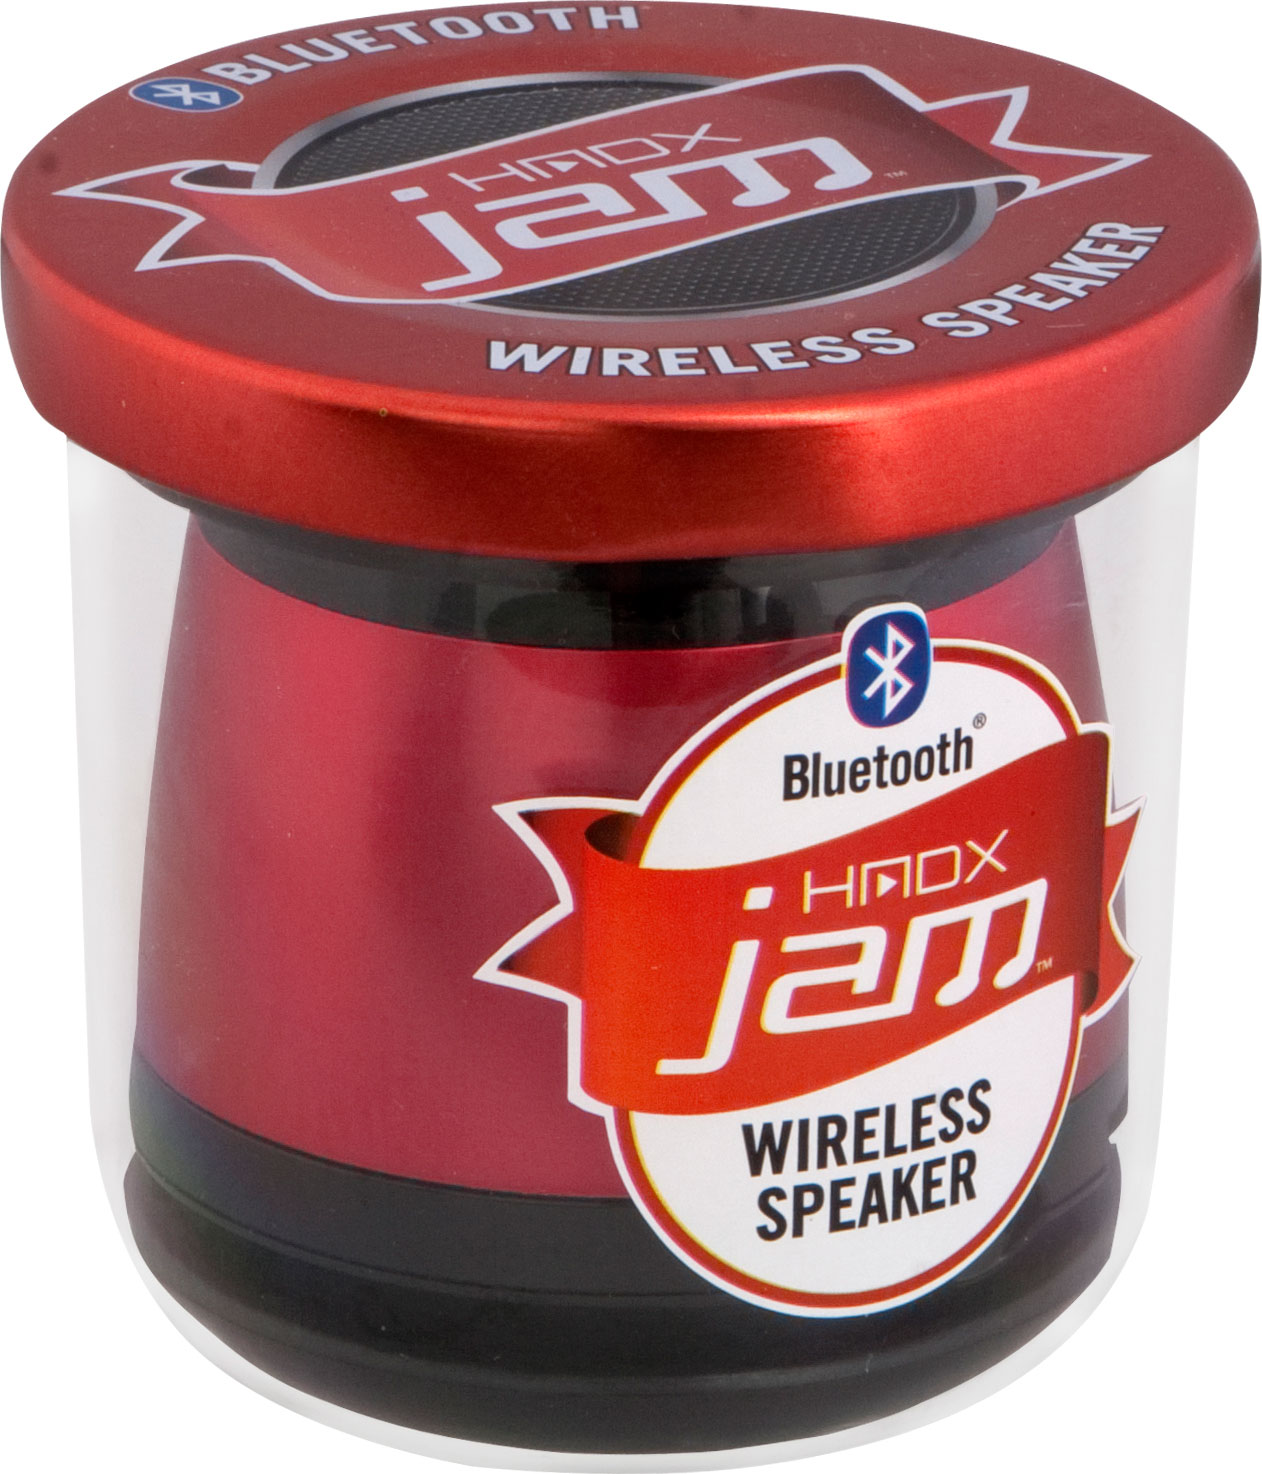 Jam Audio Classic™ Wireless Bluetooth Speaker HX-P230 Strawberry